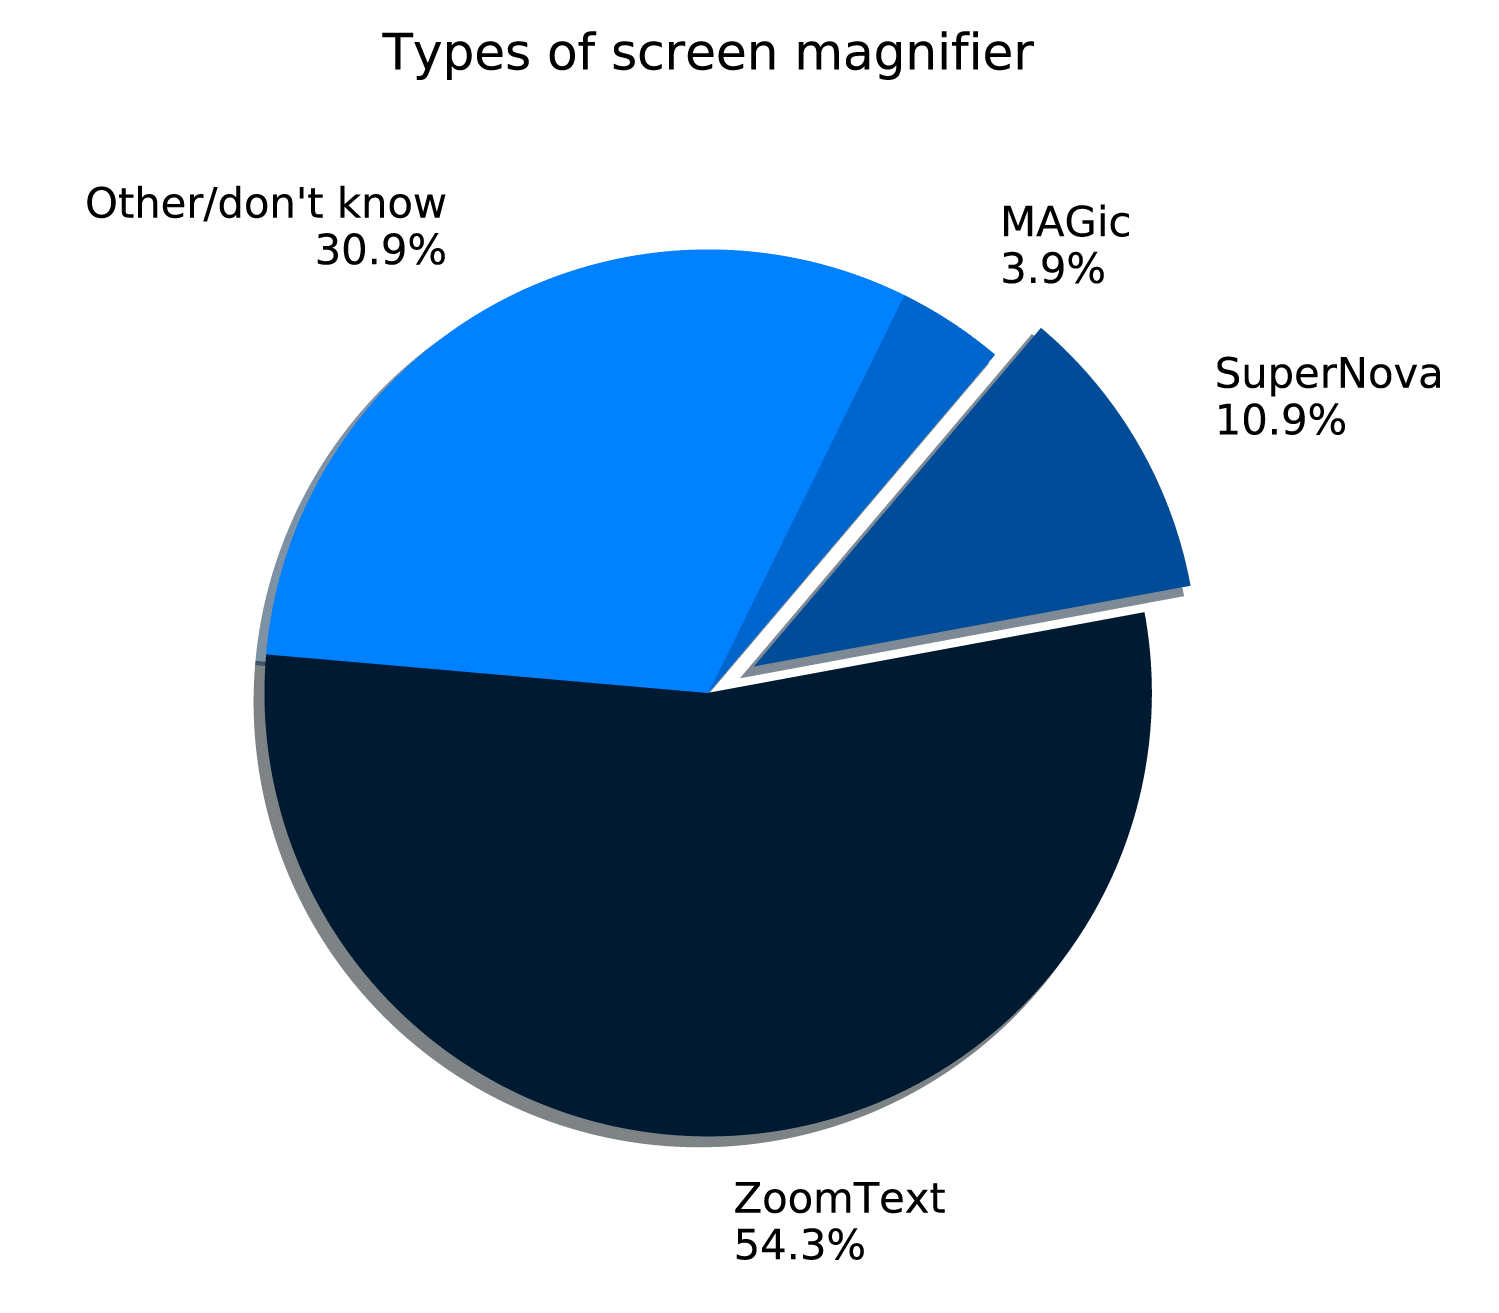 Pie chart showing percentages of users of different types of screen magnifier